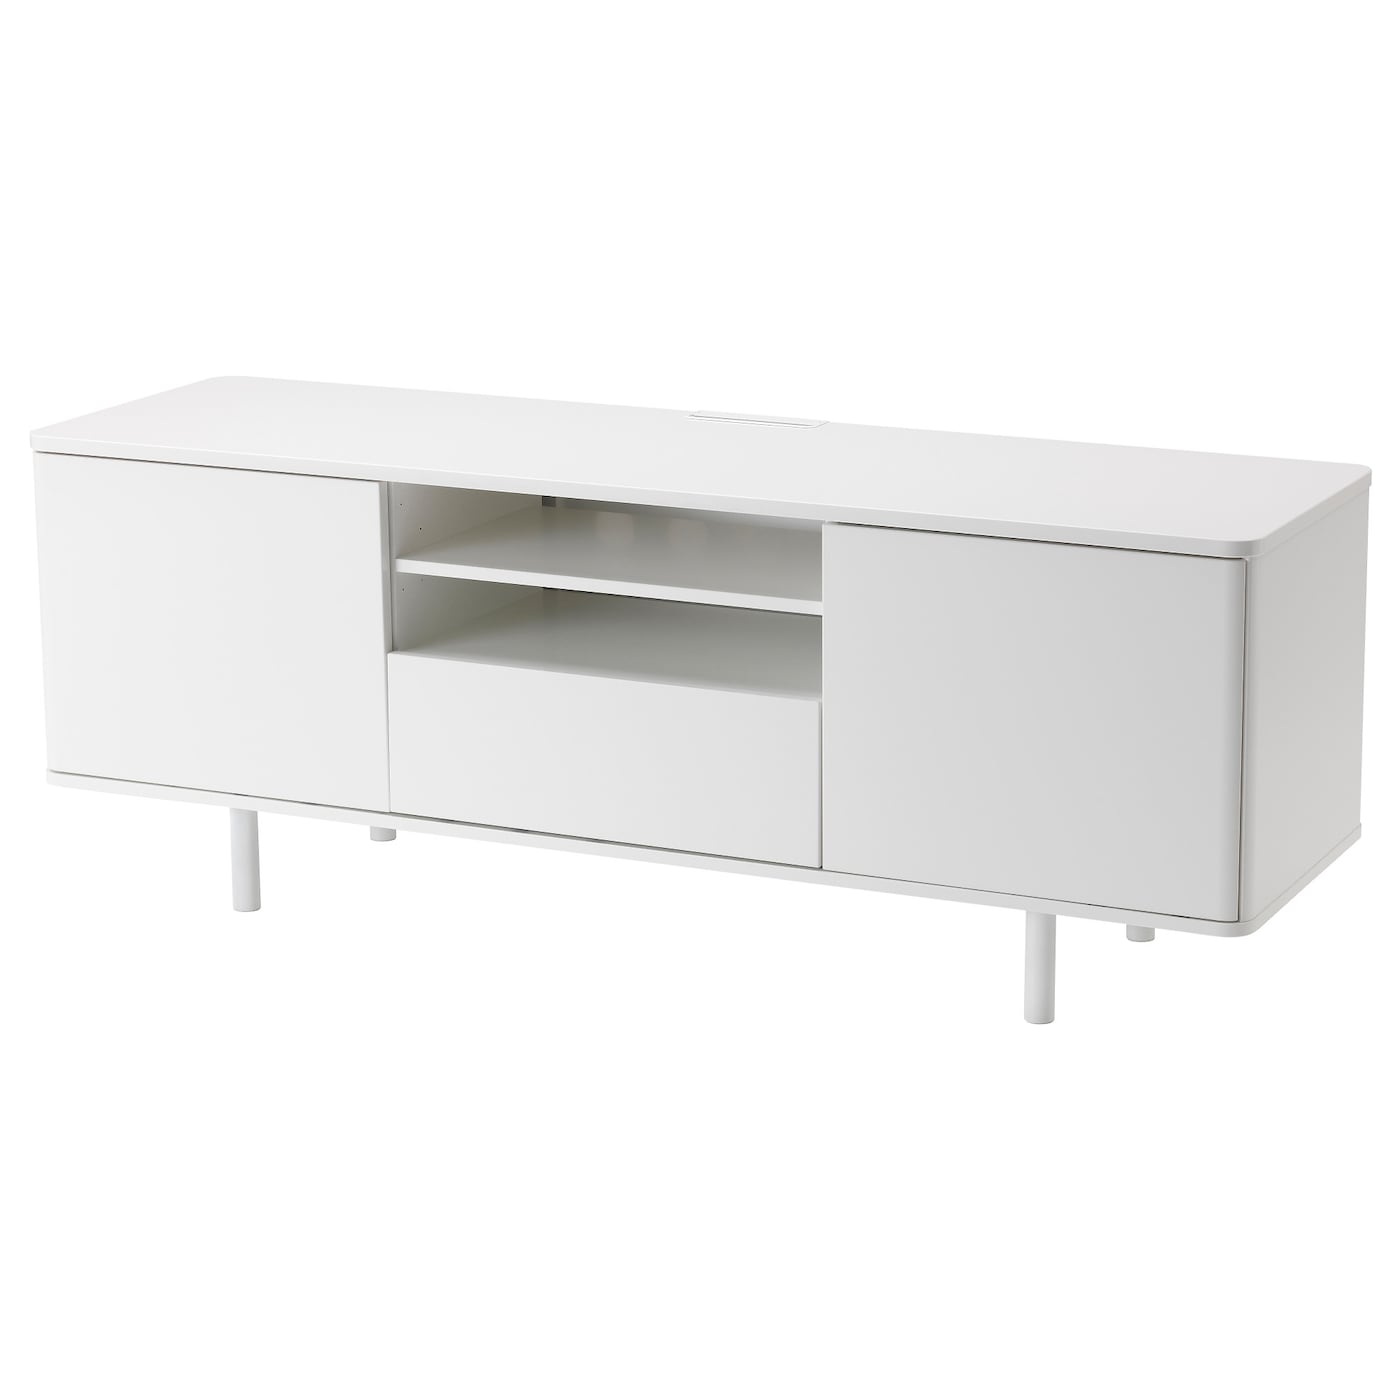 mostorp tv bench high gloss white 159x46 cm ikea. Black Bedroom Furniture Sets. Home Design Ideas